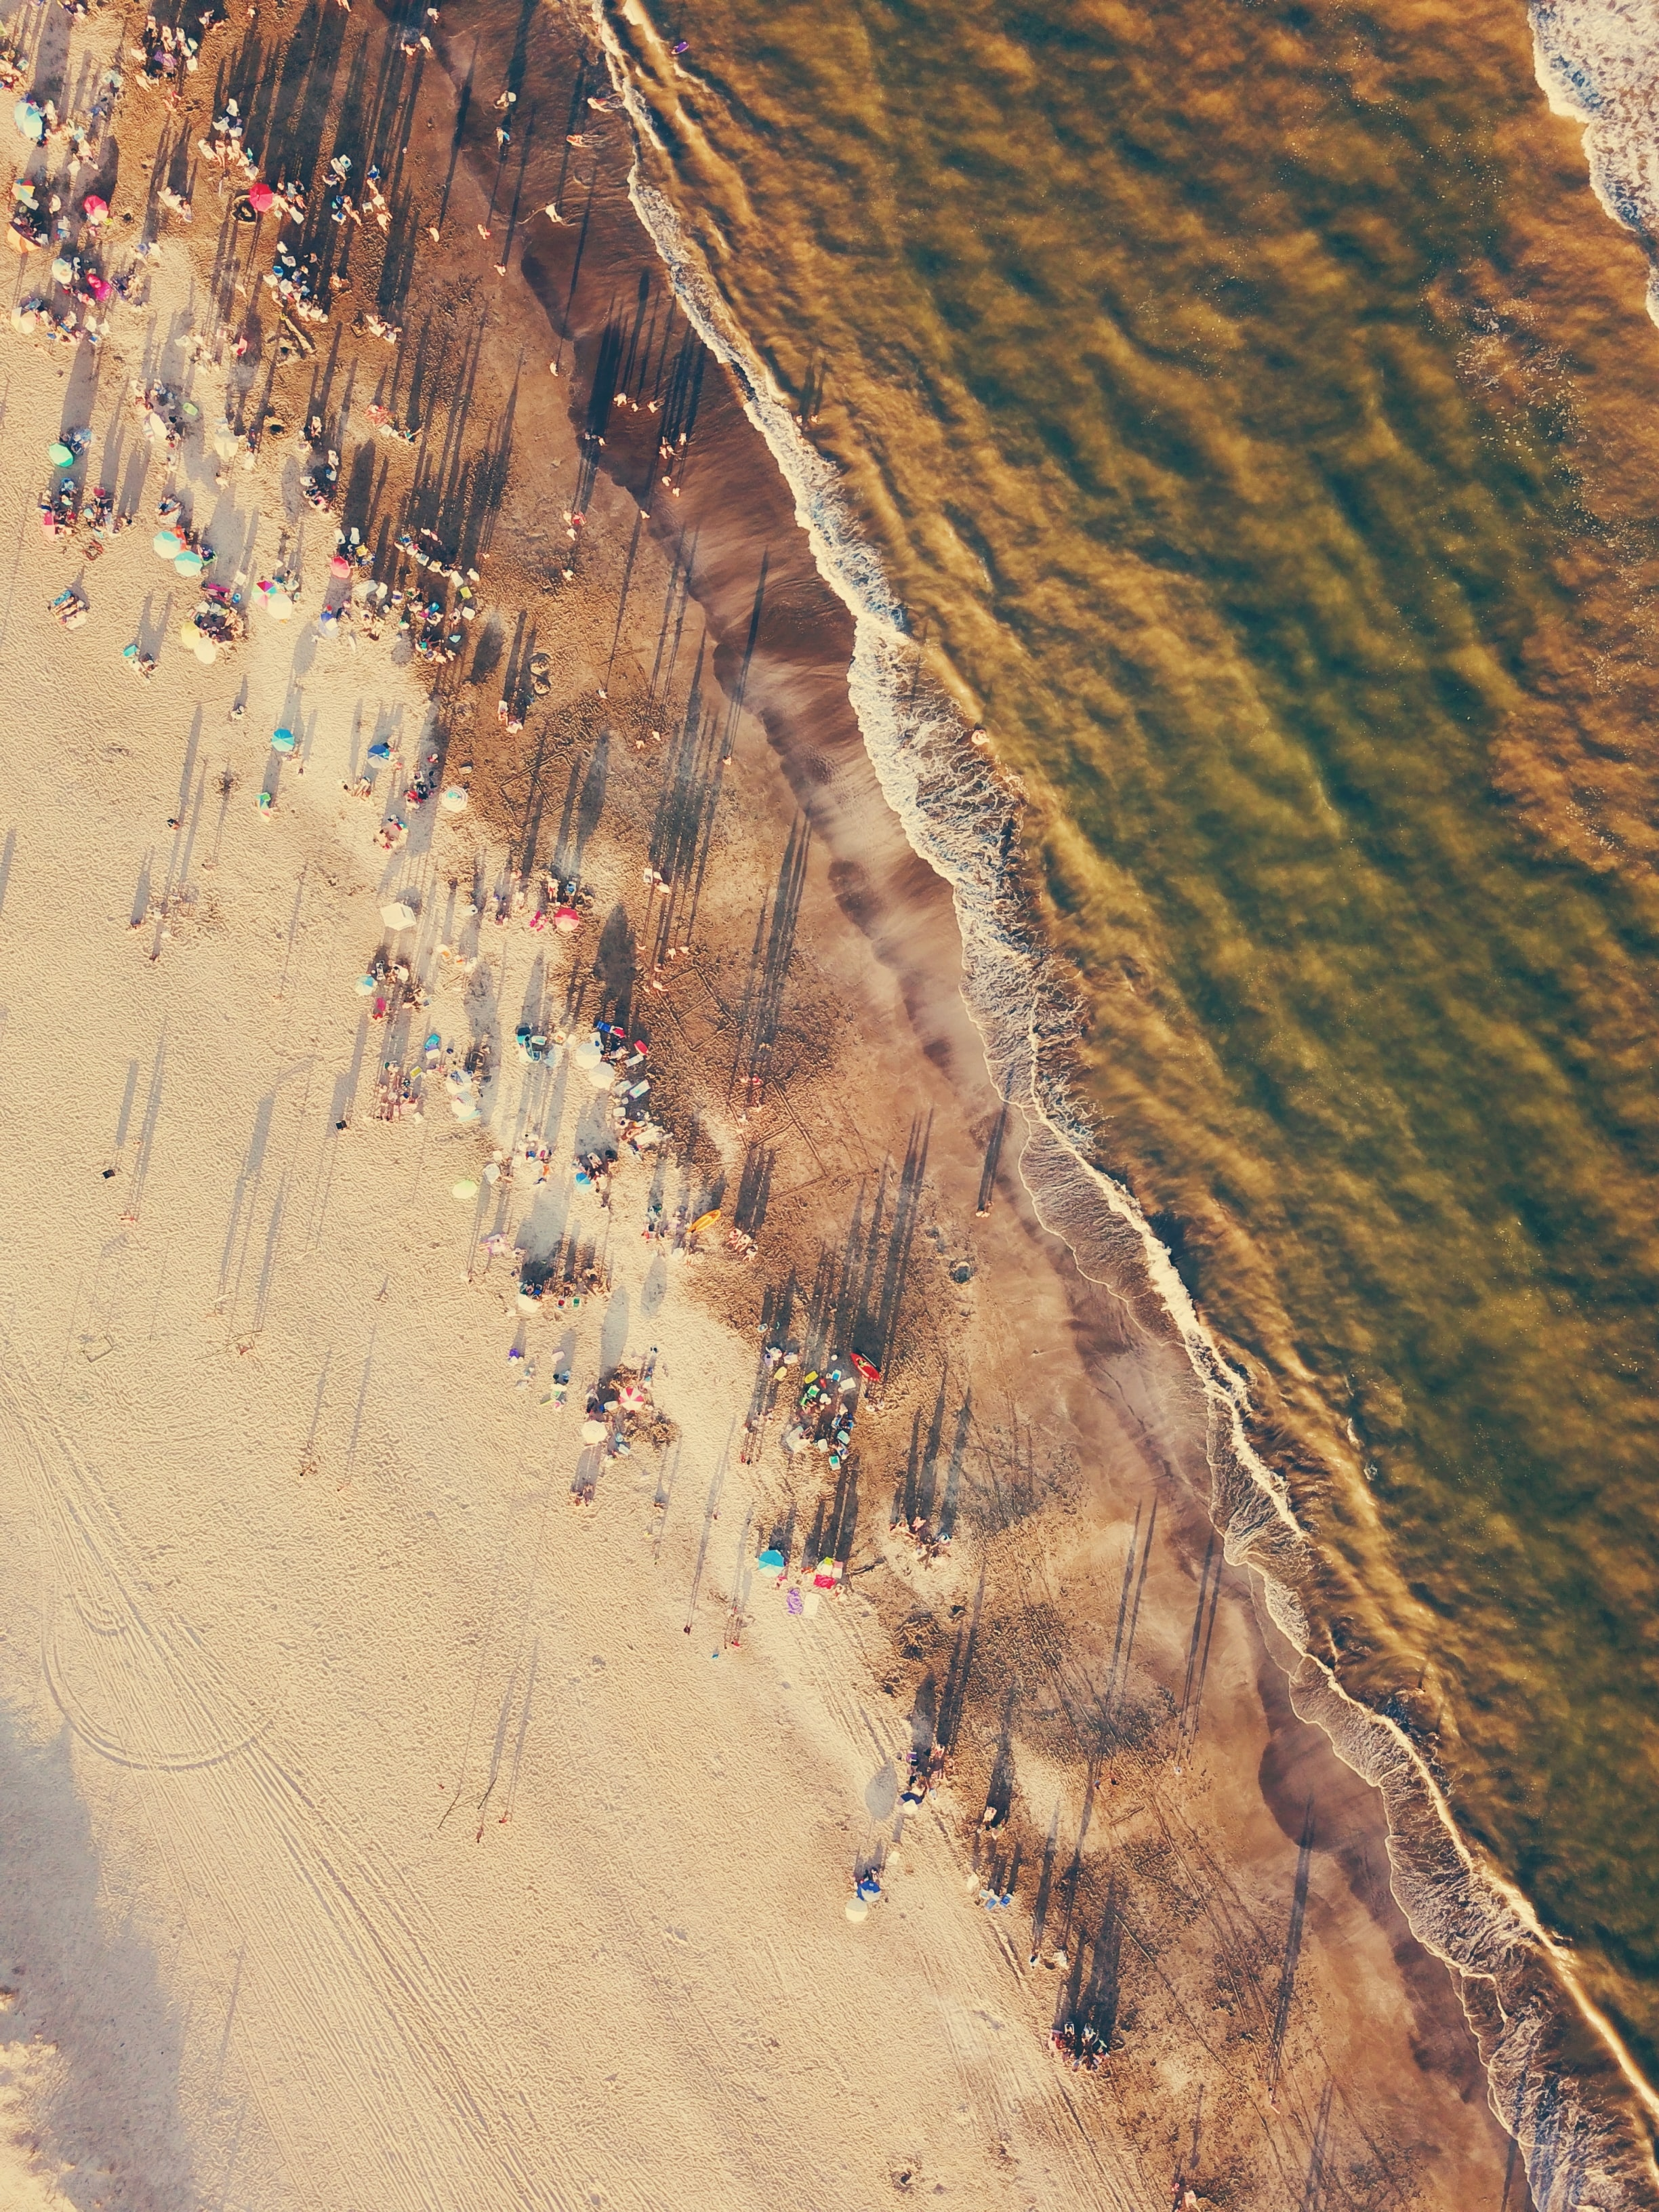 aerial view of people near body of water